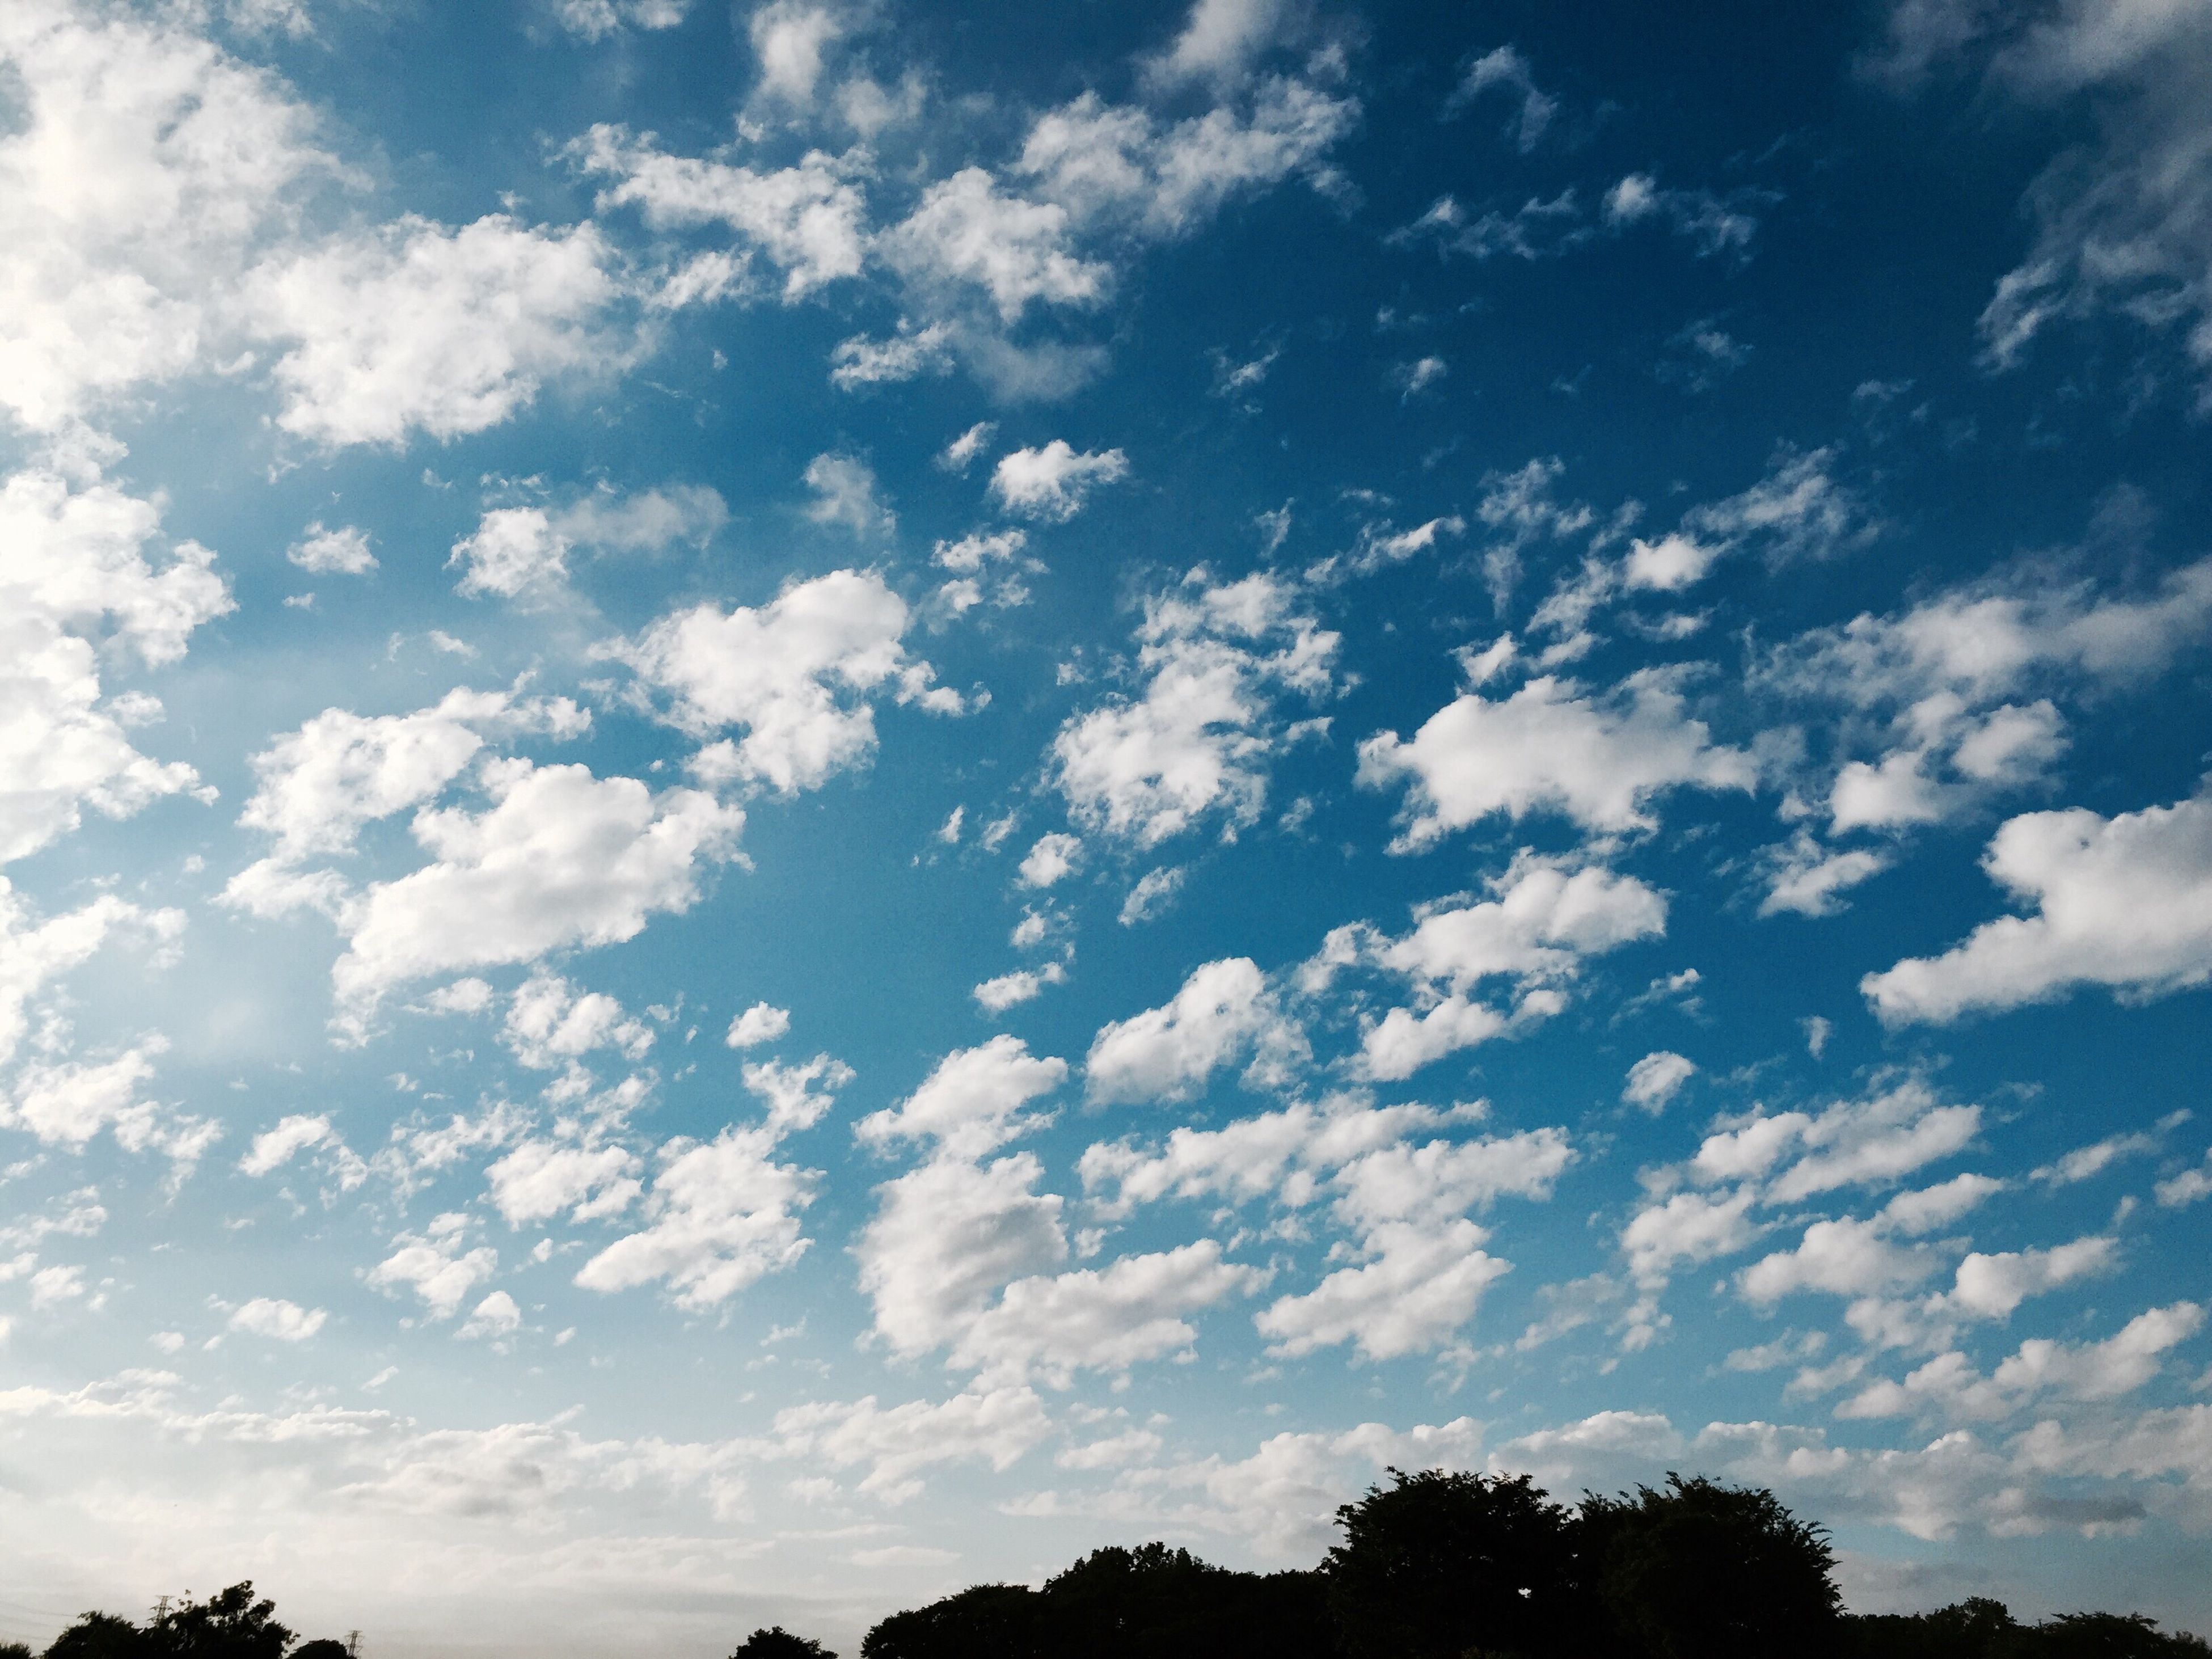 beauty in nature, sky, nature, scenics, cloud - sky, tranquility, low angle view, no people, tranquil scene, tree, outdoors, day, blue, backgrounds